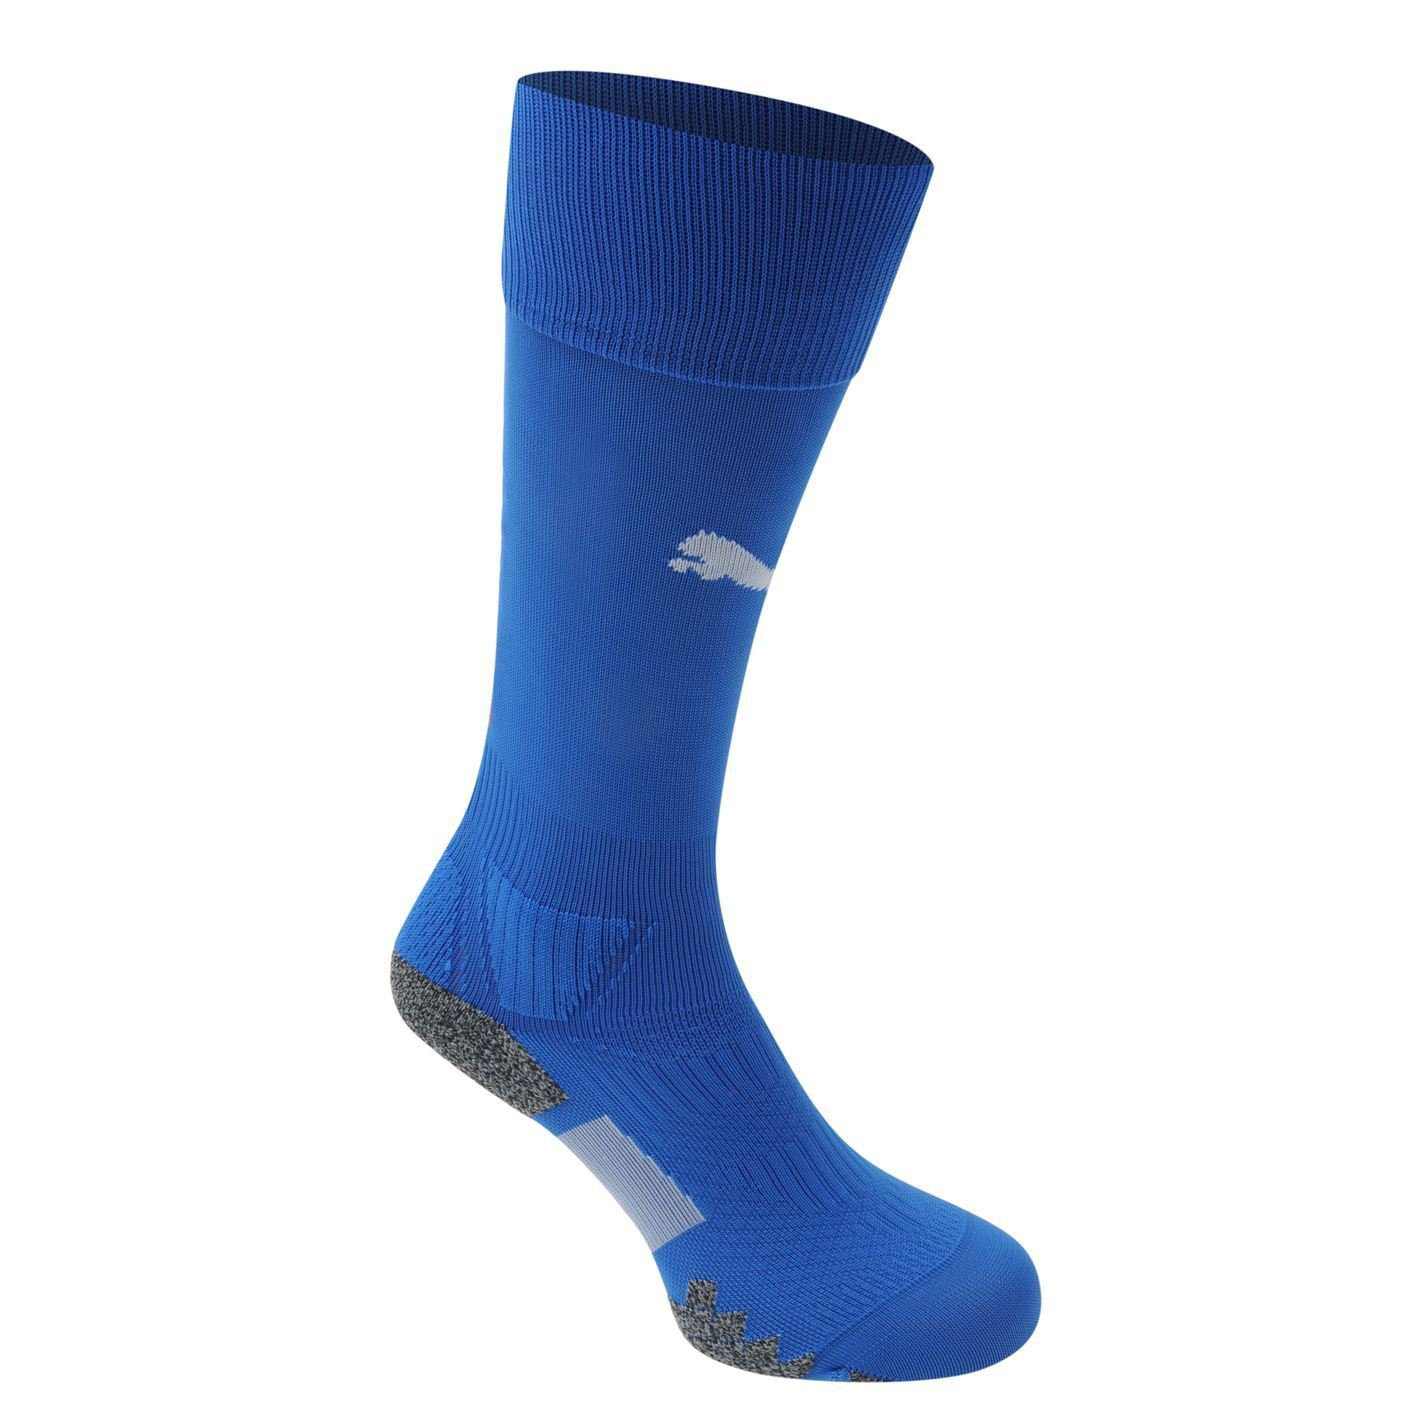 Puma Mens Italy Home Socks Ankle Pairs Football Sports Clothing Wear